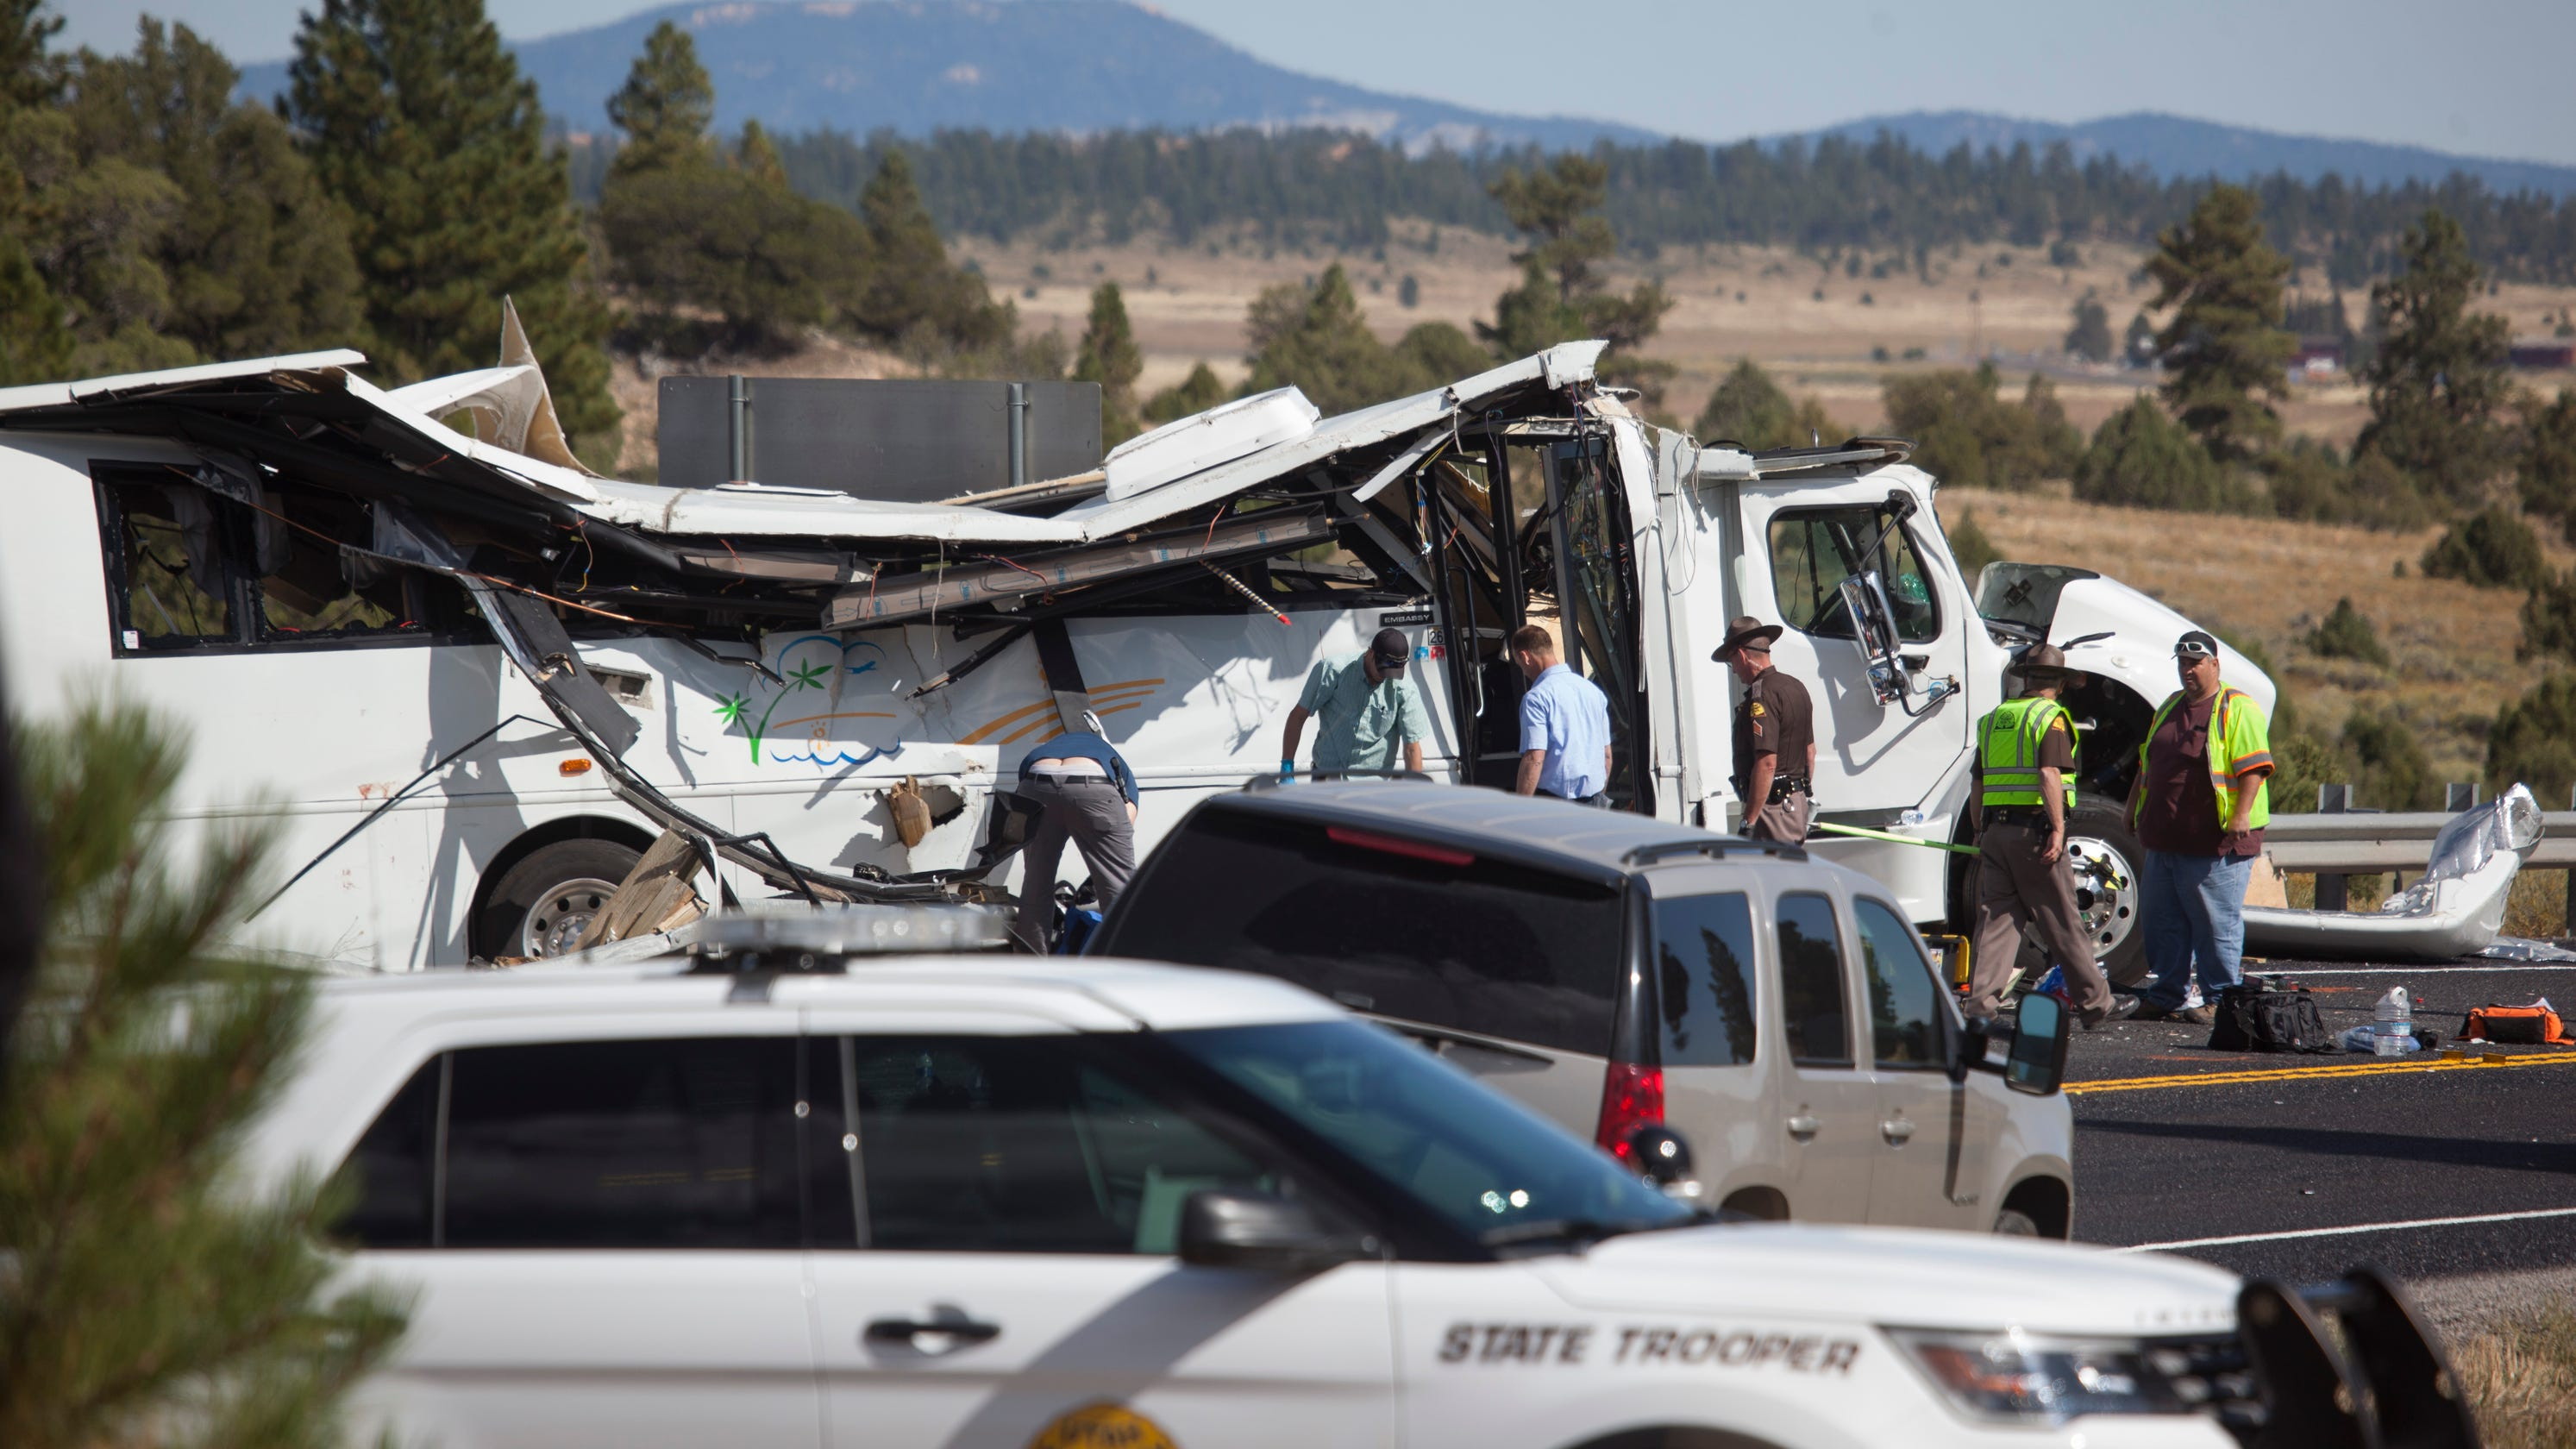 Tour Bus Crash Leaves 4 Dead Near Bryce Canyon National